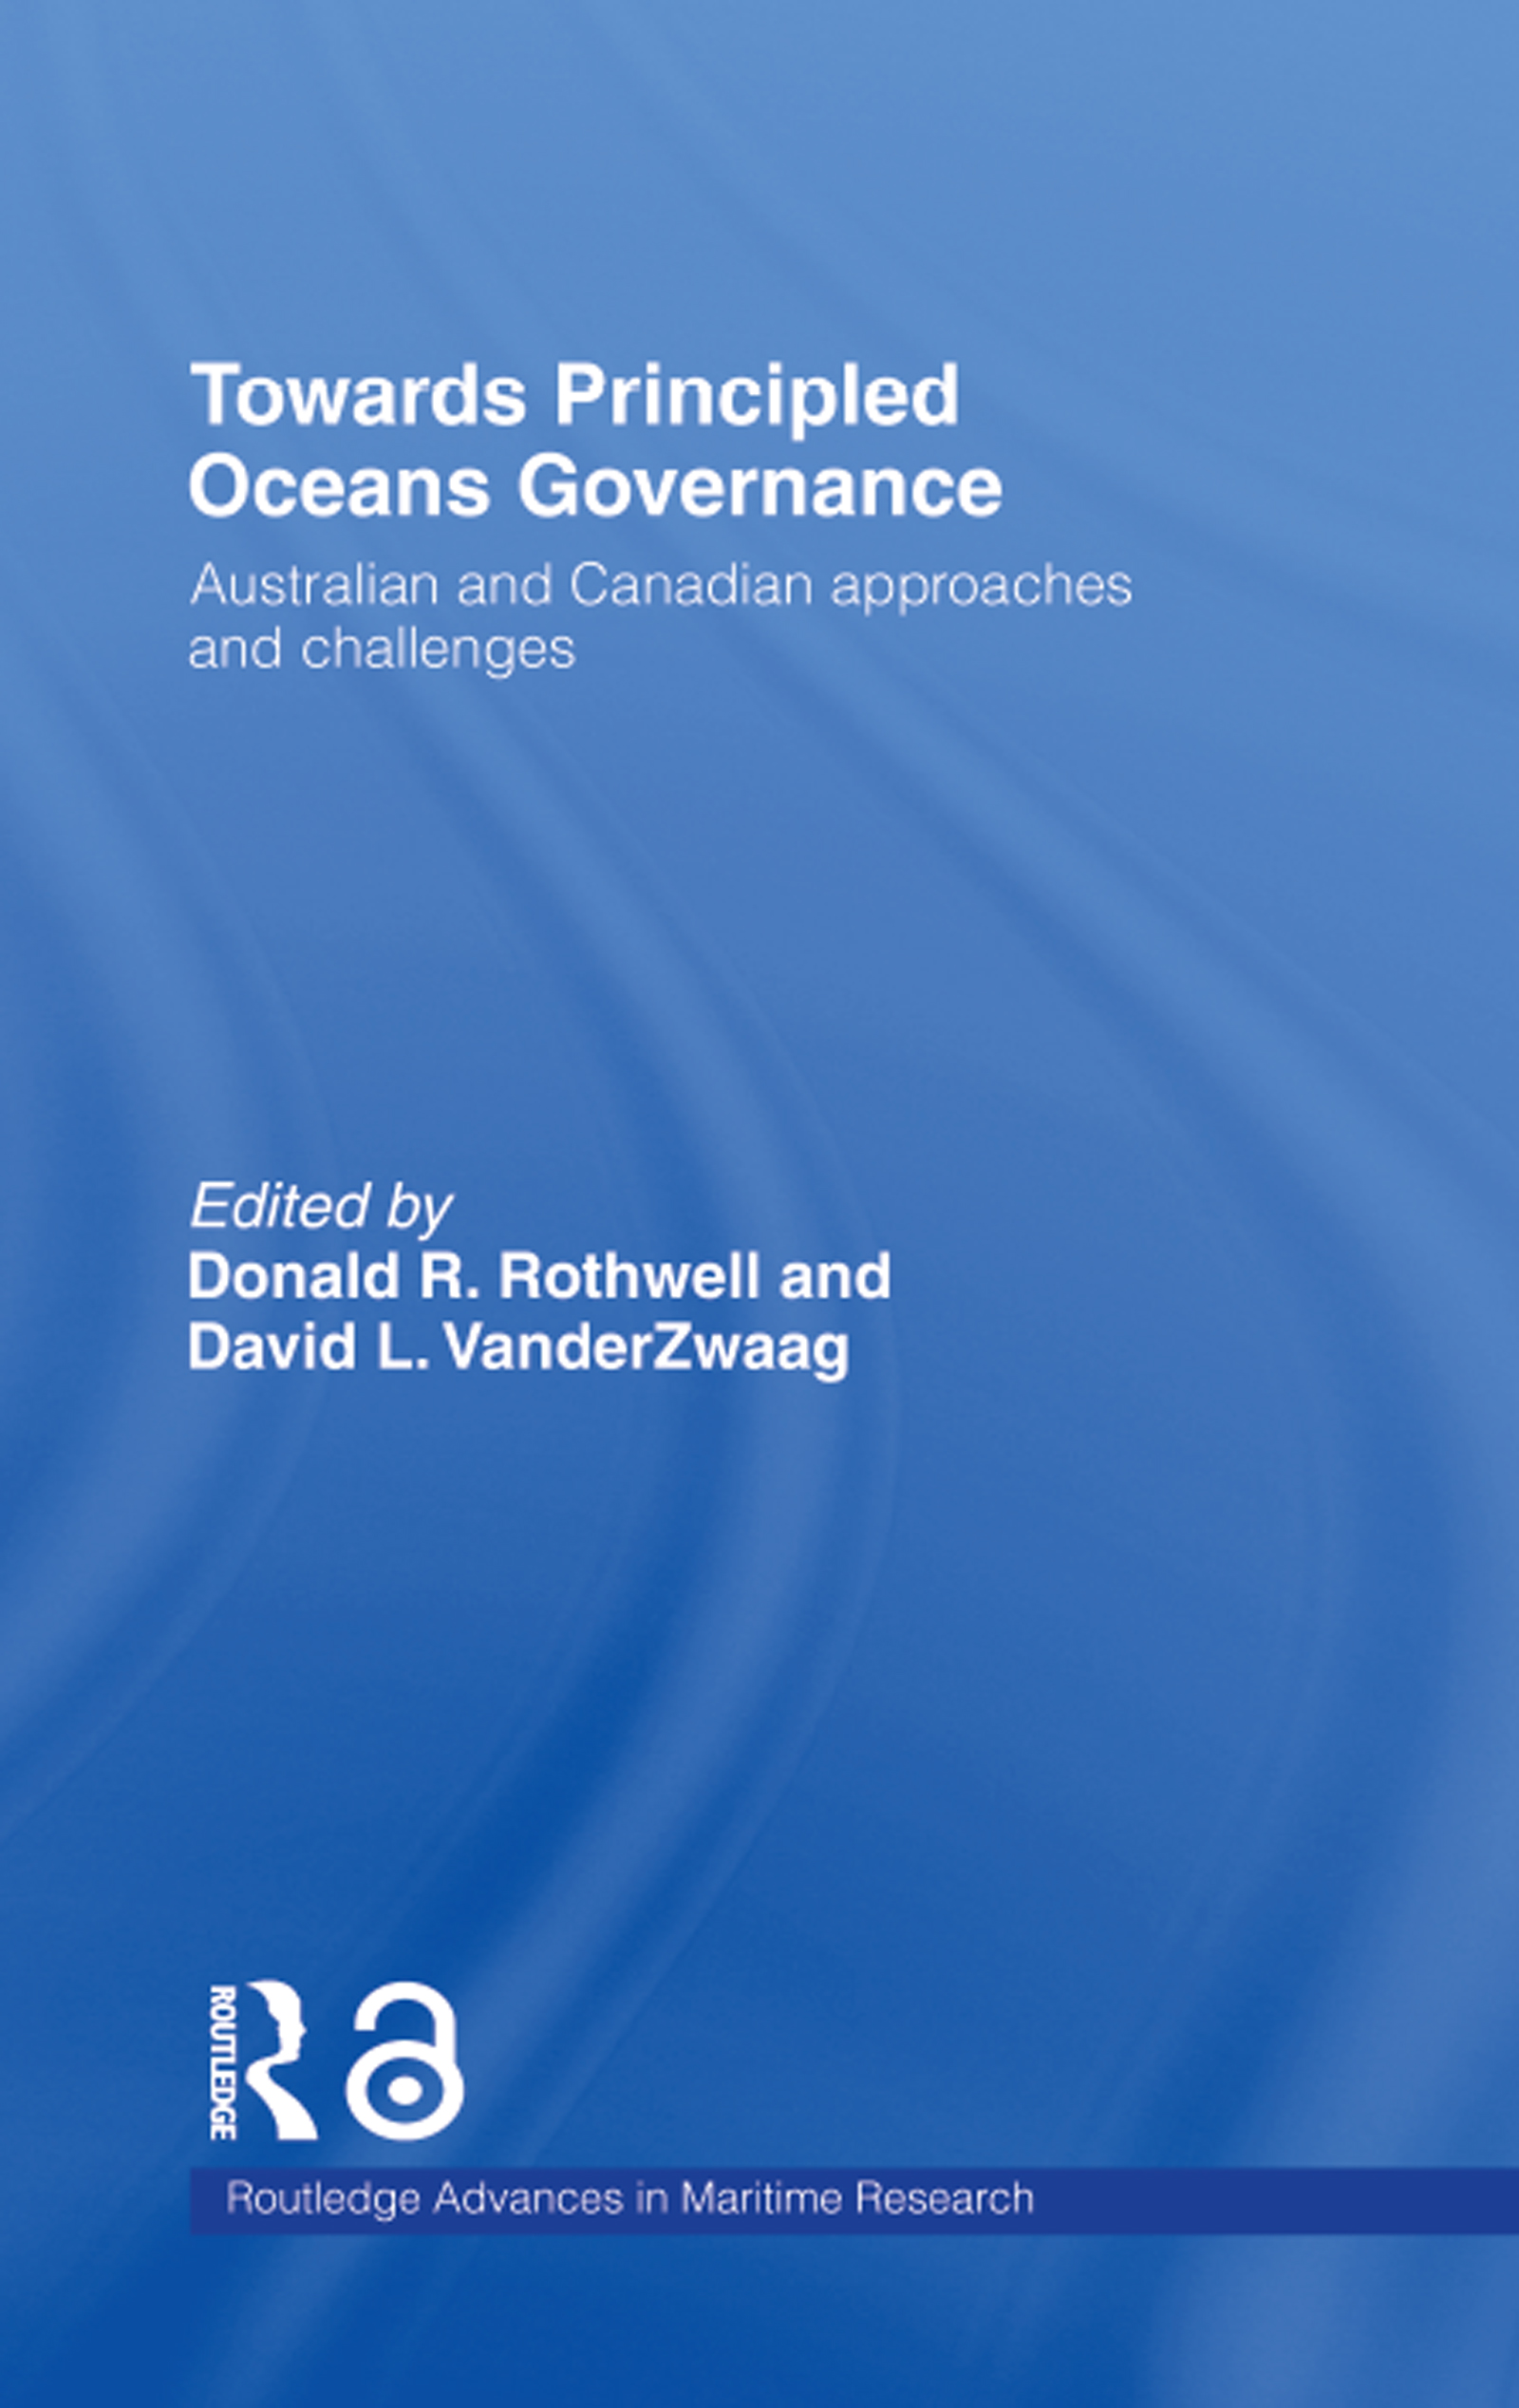 Download Ebook Towards Principled Oceans Governance by Donald R. Rothwell Pdf